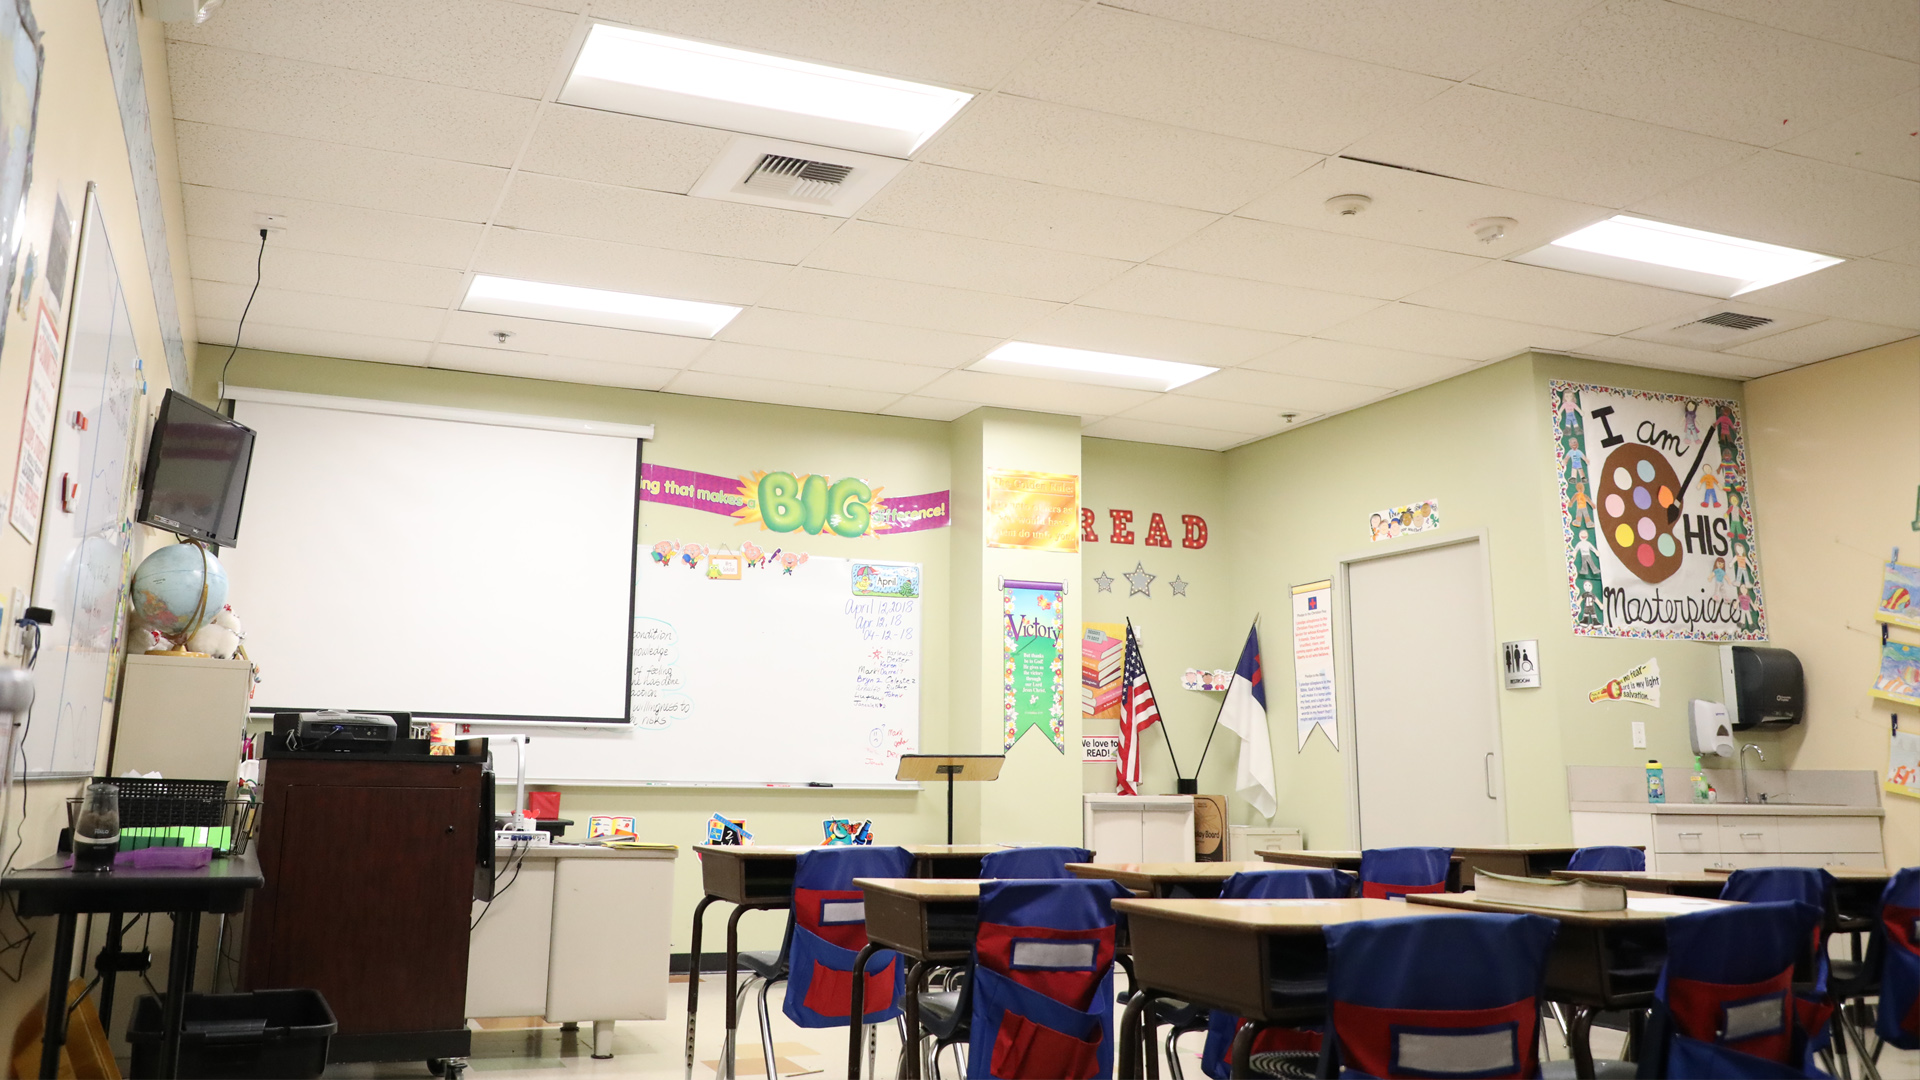 LED Retrofit in Schools